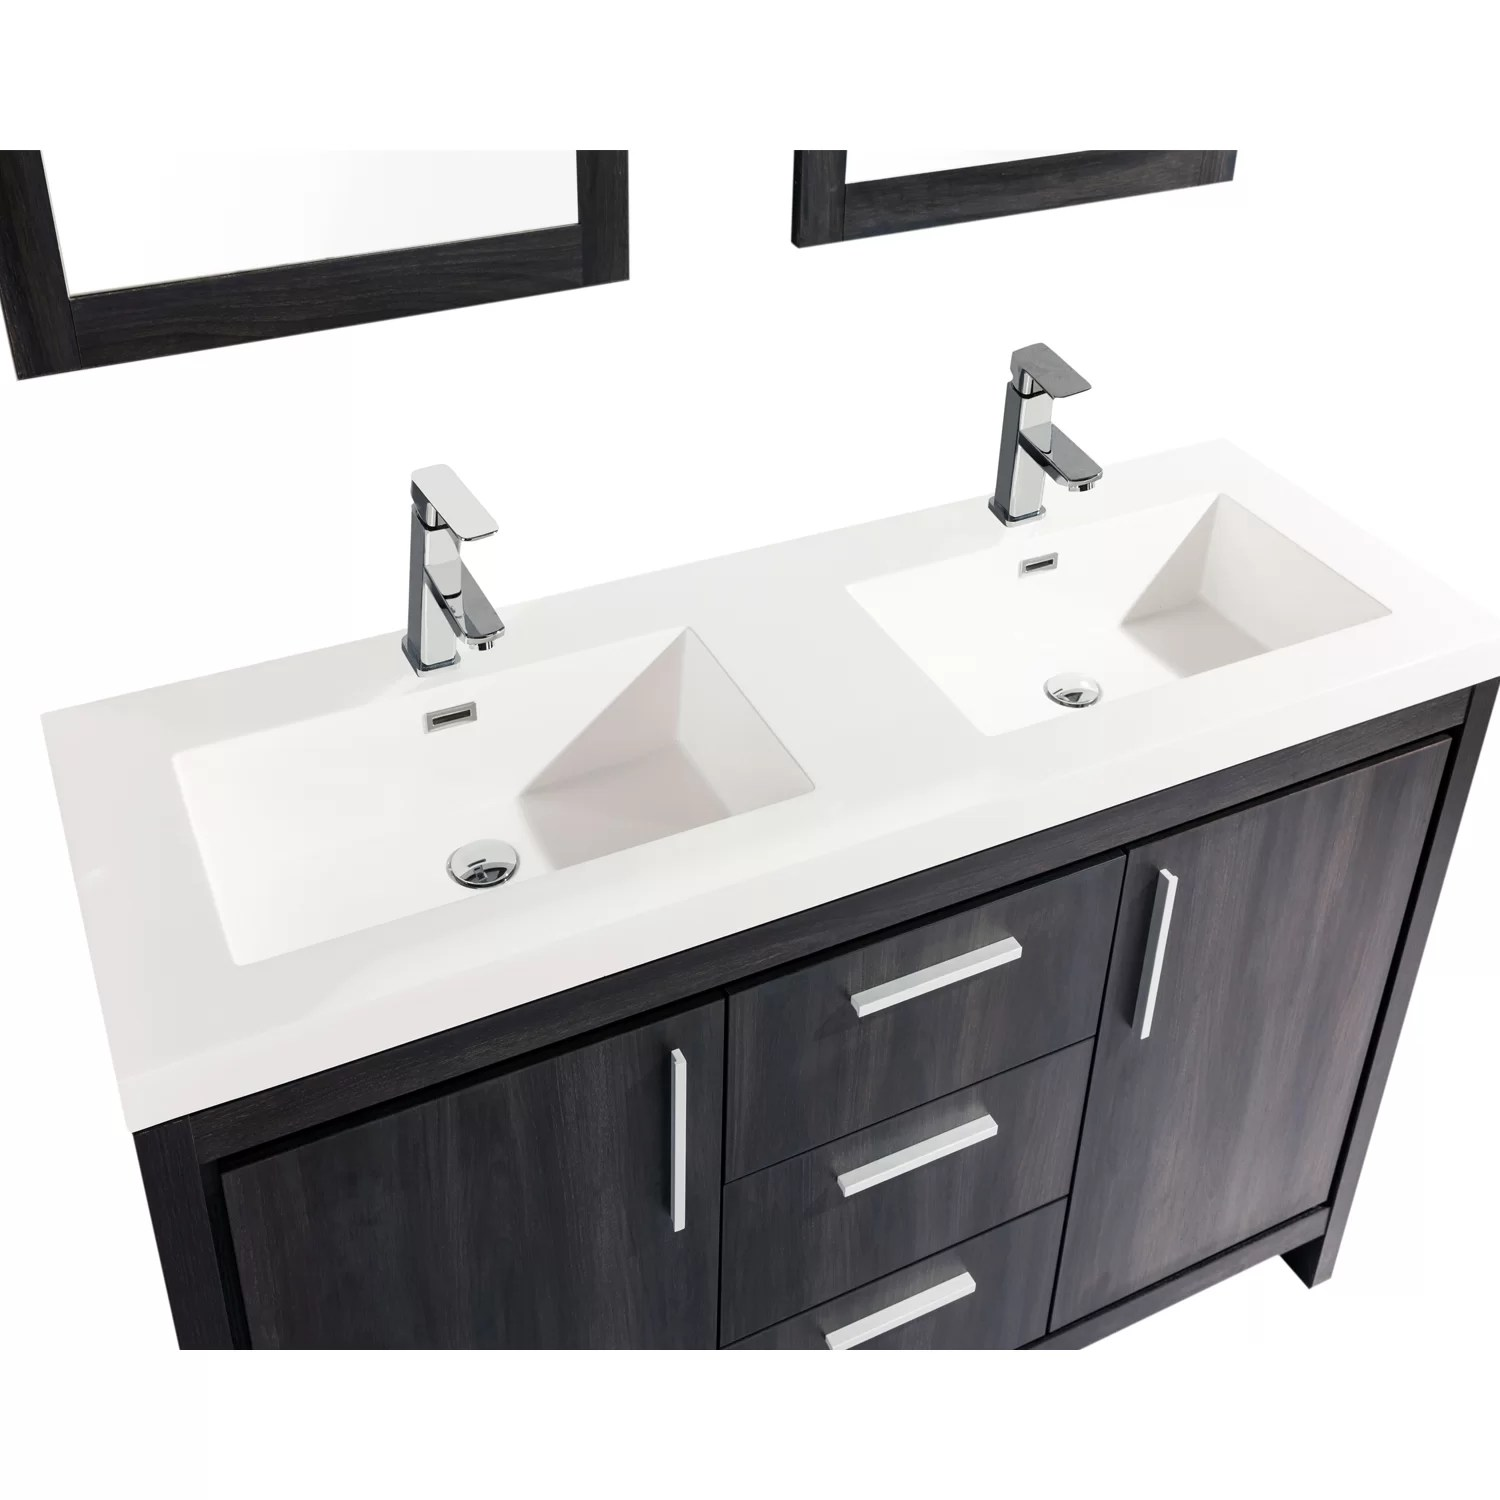 Mirrored Bathroom Vanity With Sink Mtdvanities Miami 59 Quot Double Sink Modern Bathroom Vanity